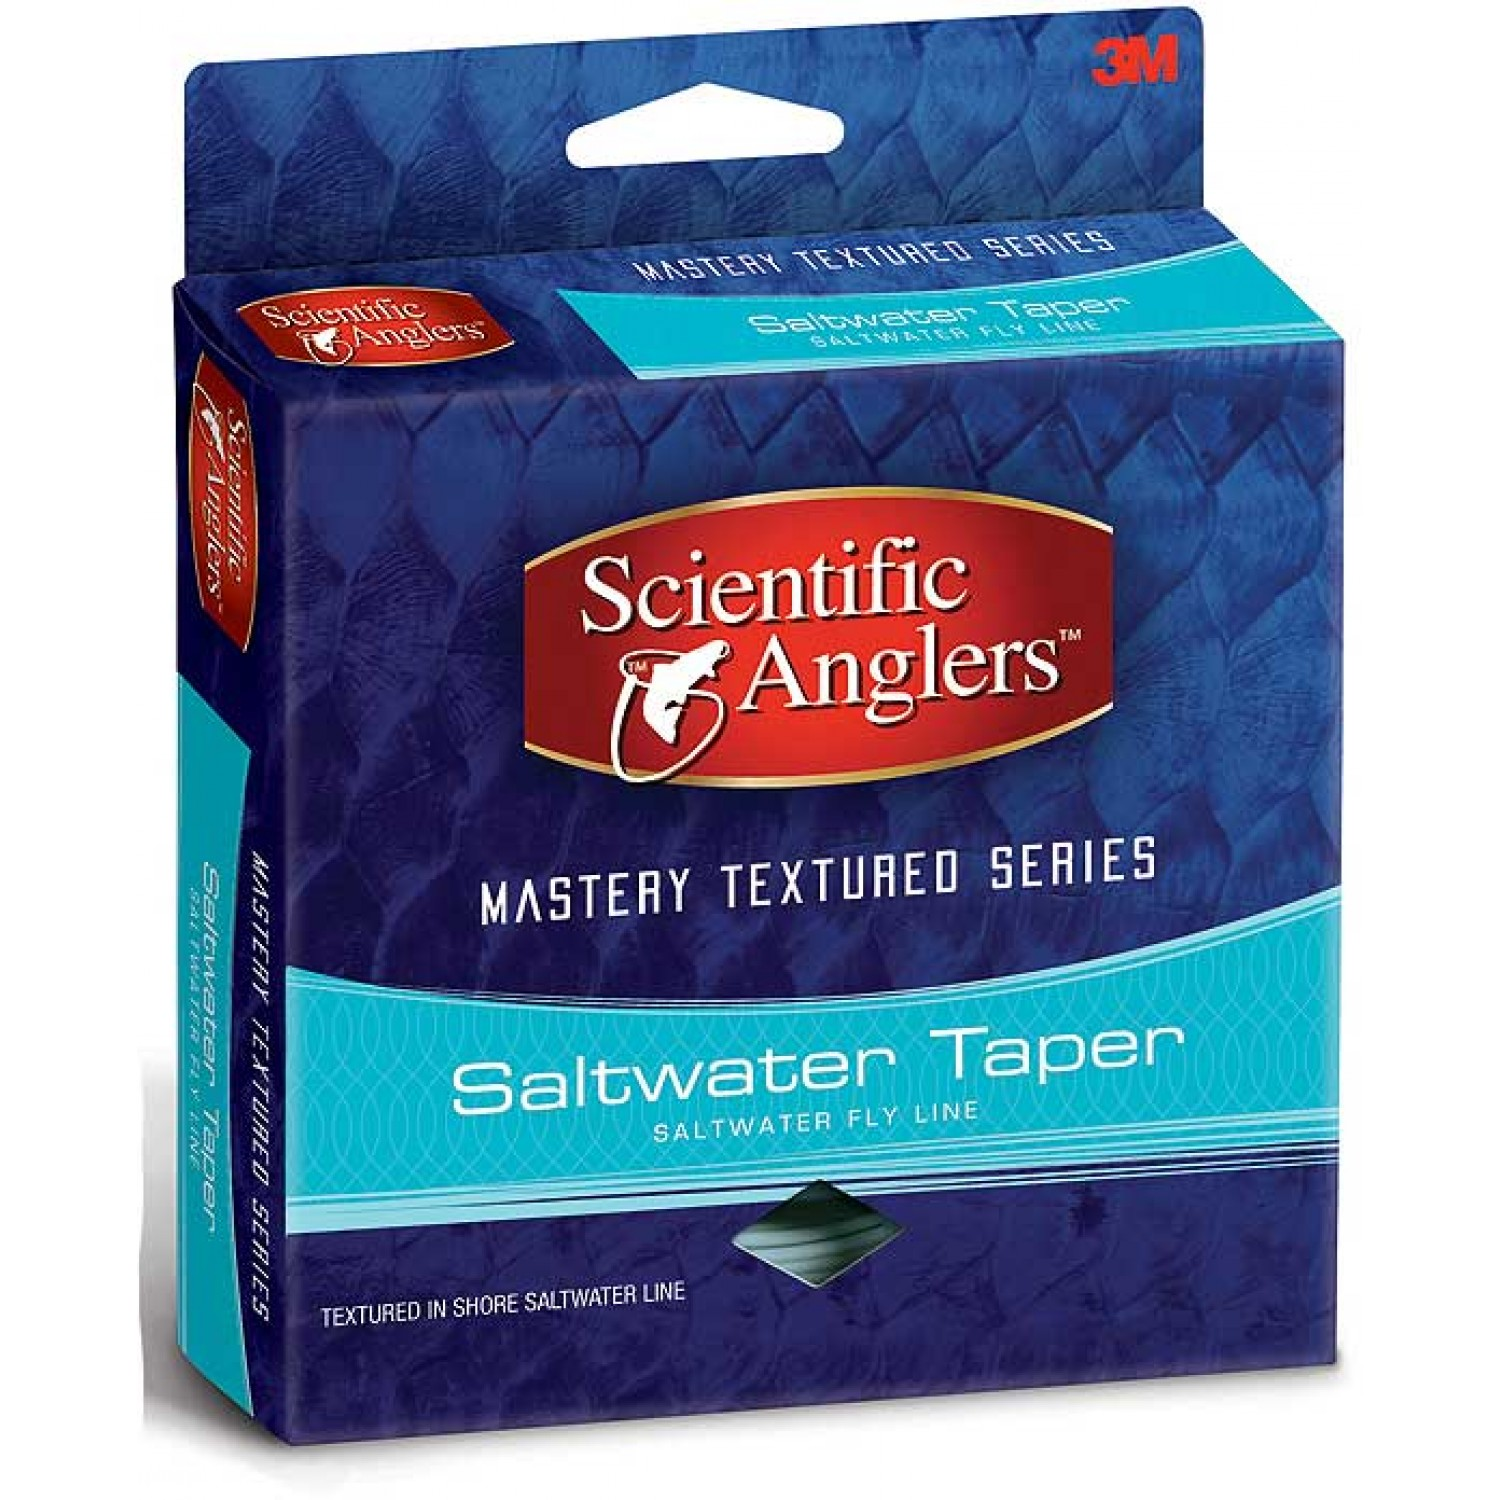 Scientific Anglers Mastery Textured Saltwater WF